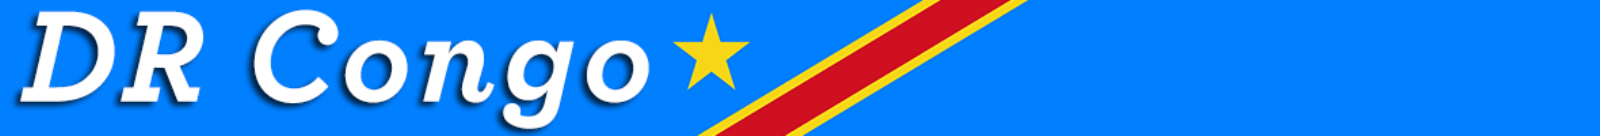 Catholic missions work in DR Congo